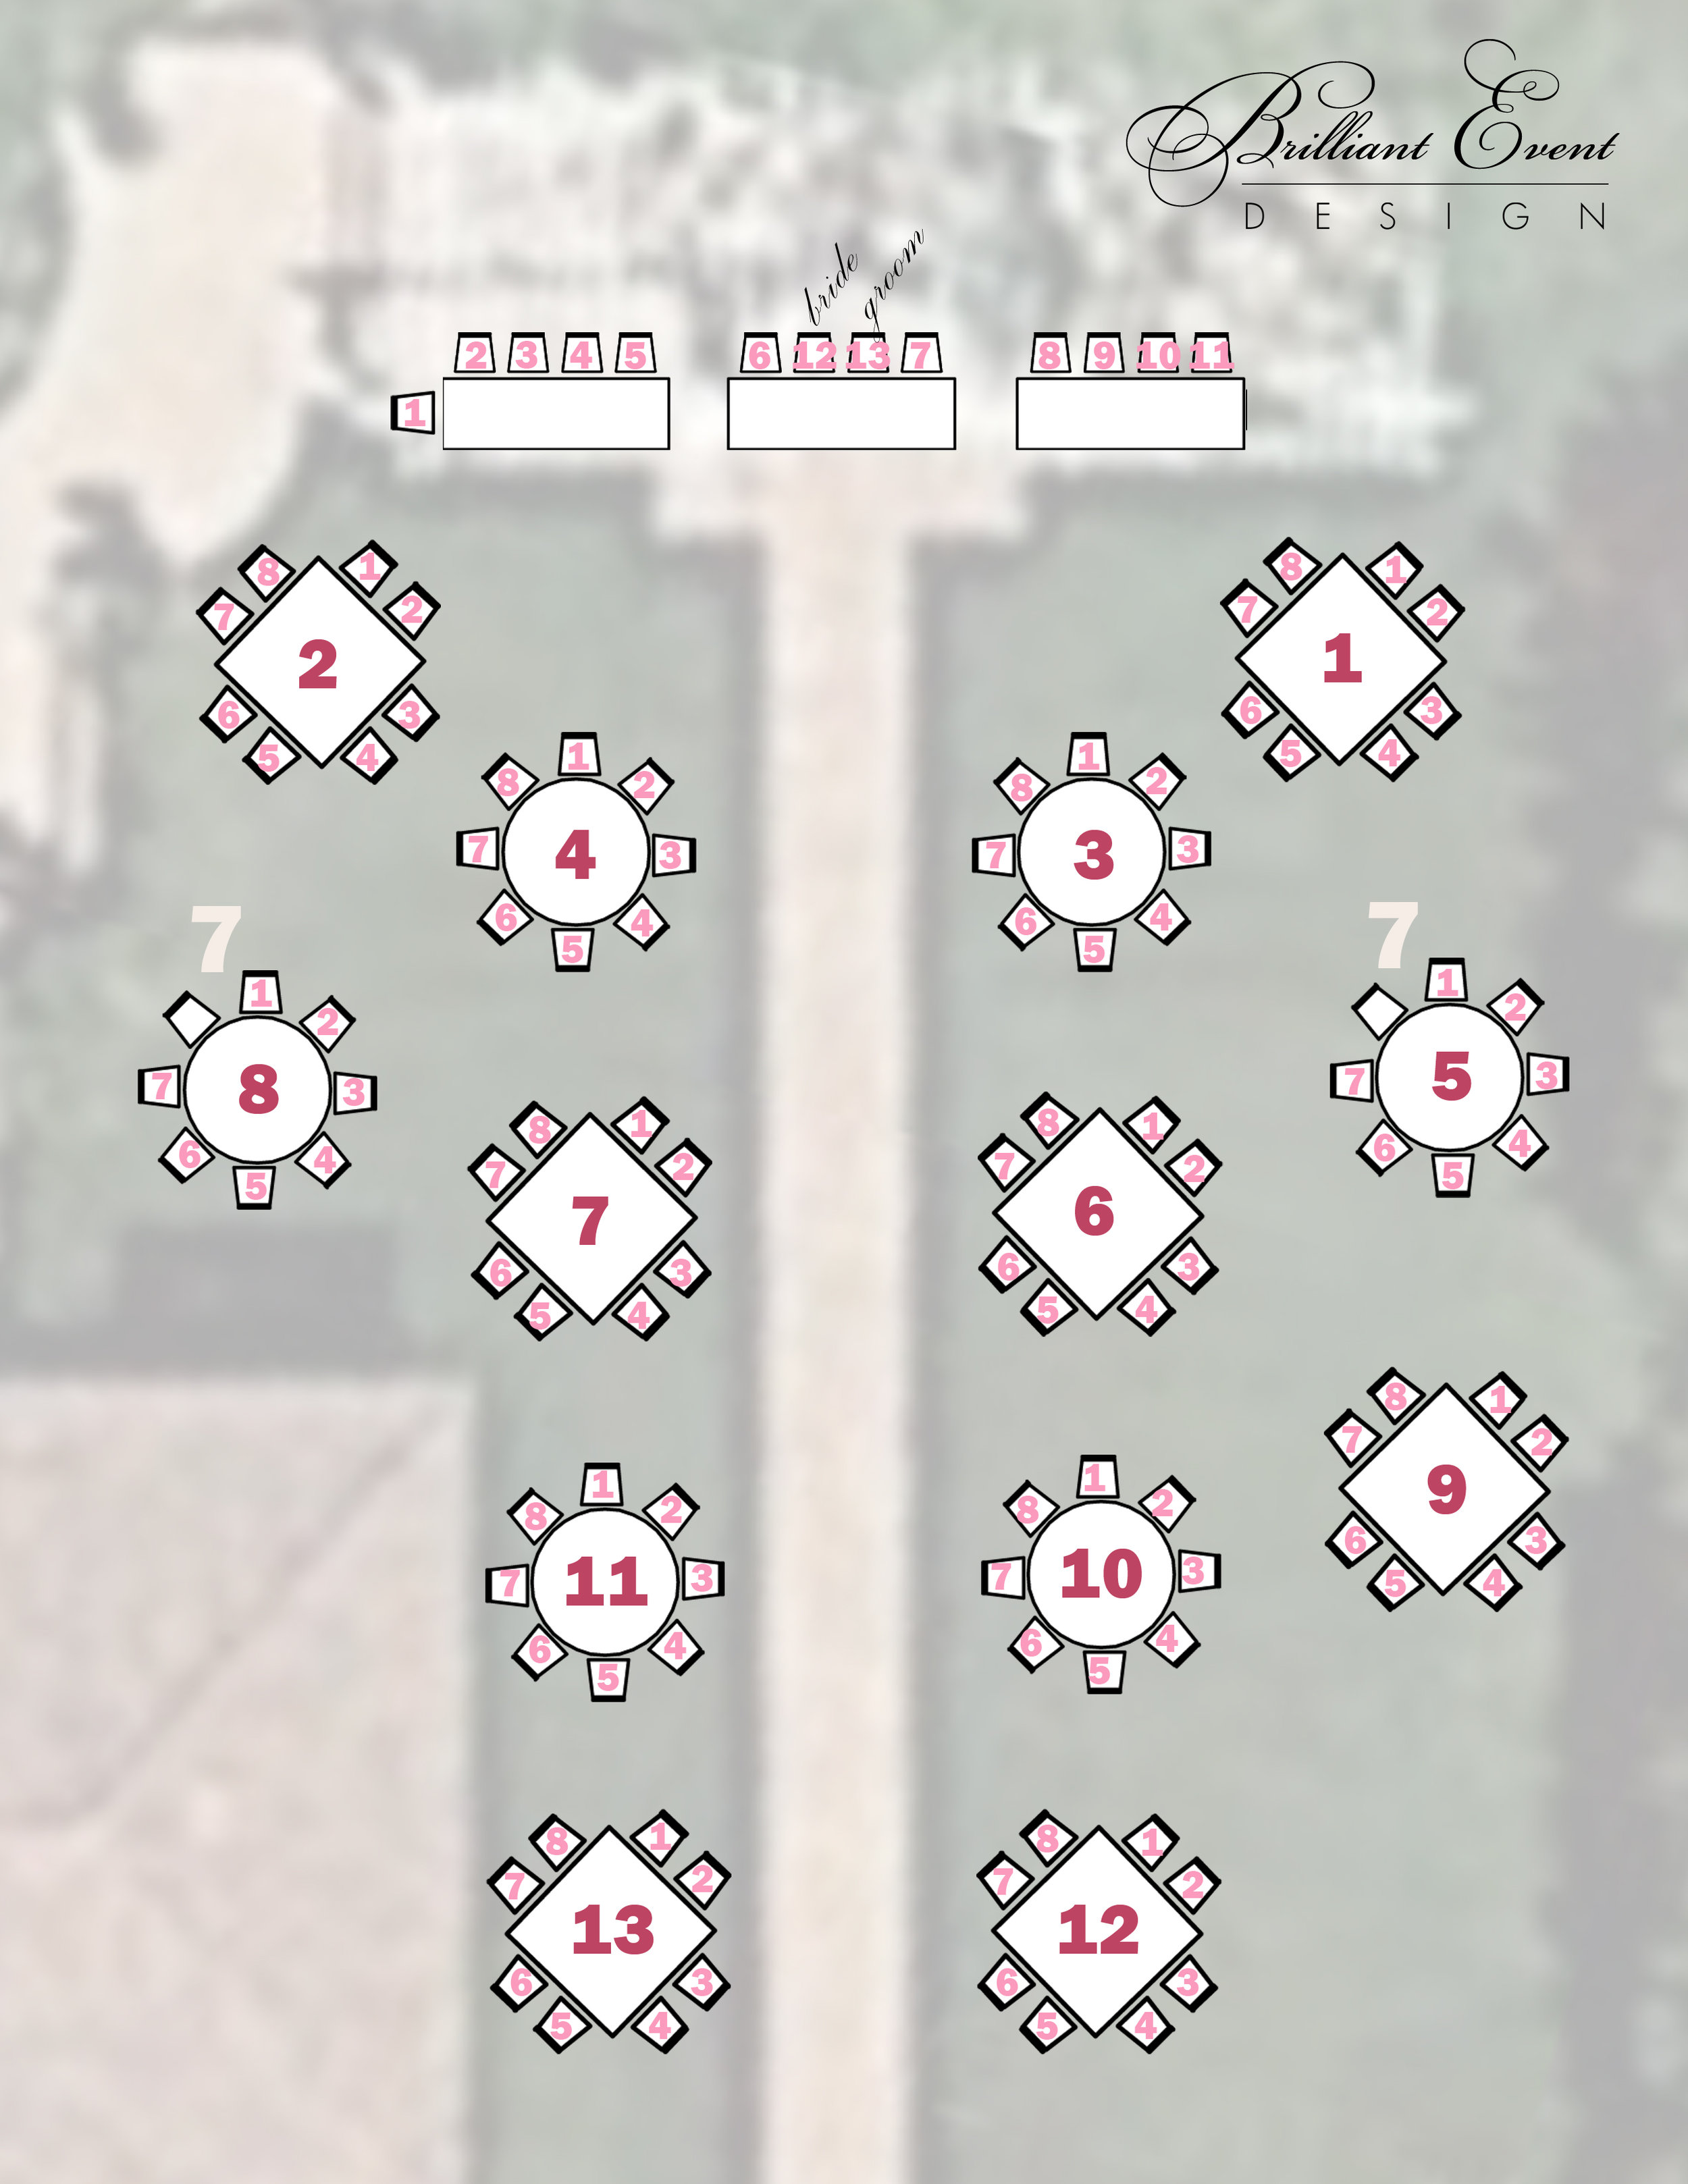 Leah & Tyler Wedding - Villa de Amore reception layout.jpg